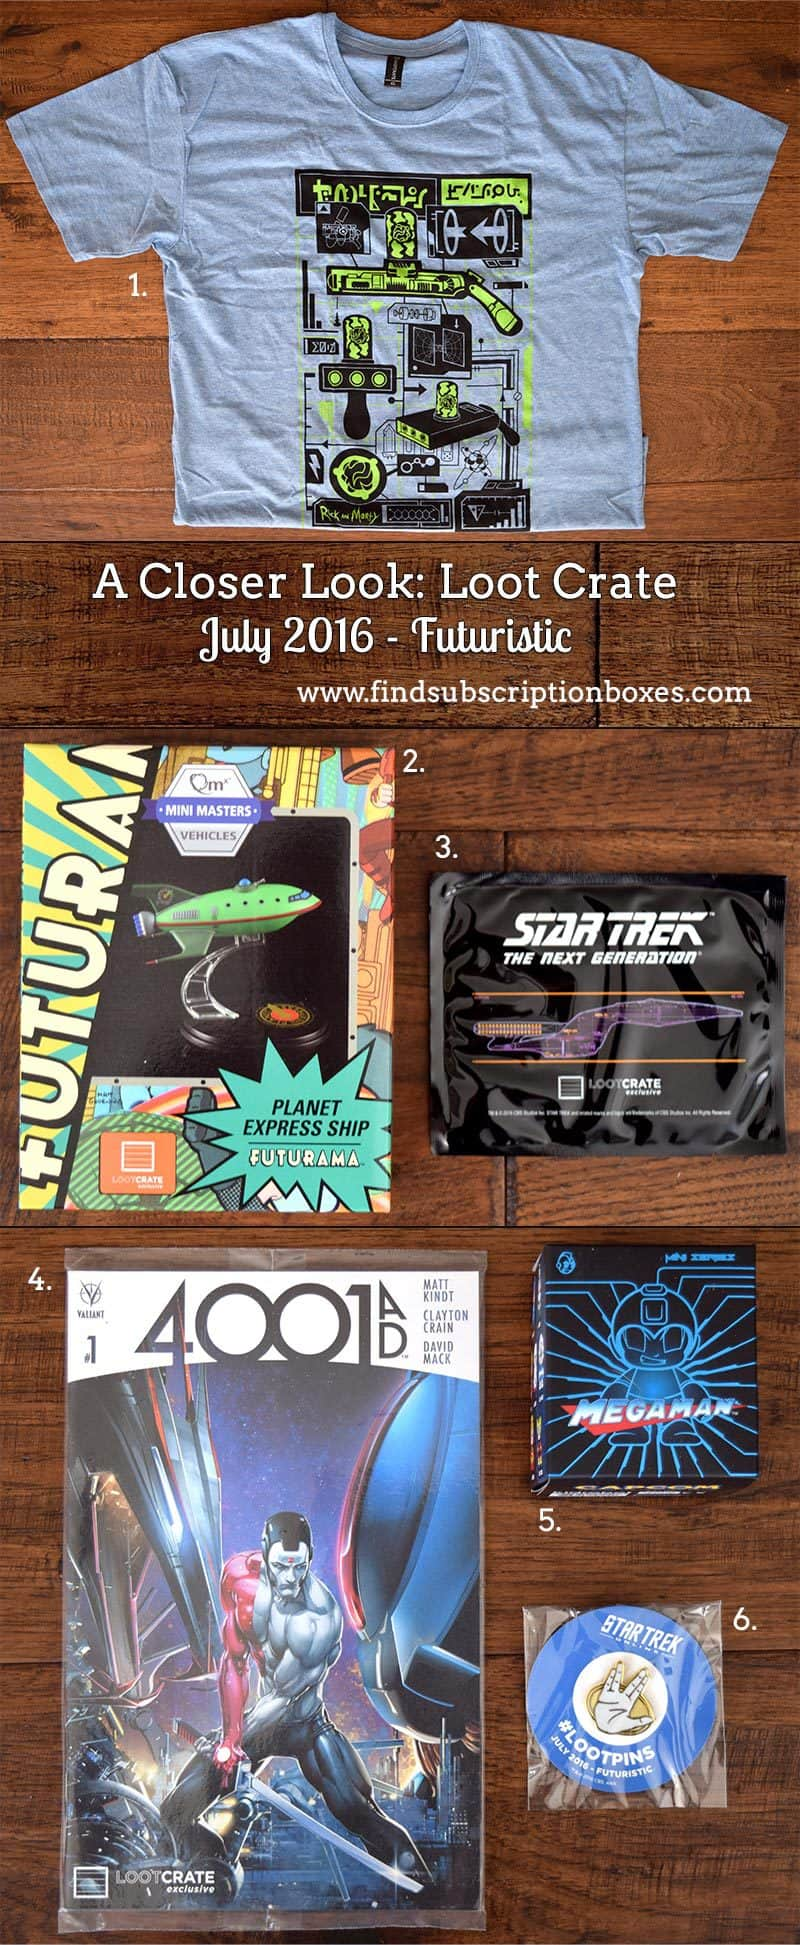 July 2016 Loot Crate Review - Futuristic Crate - Inside the Box